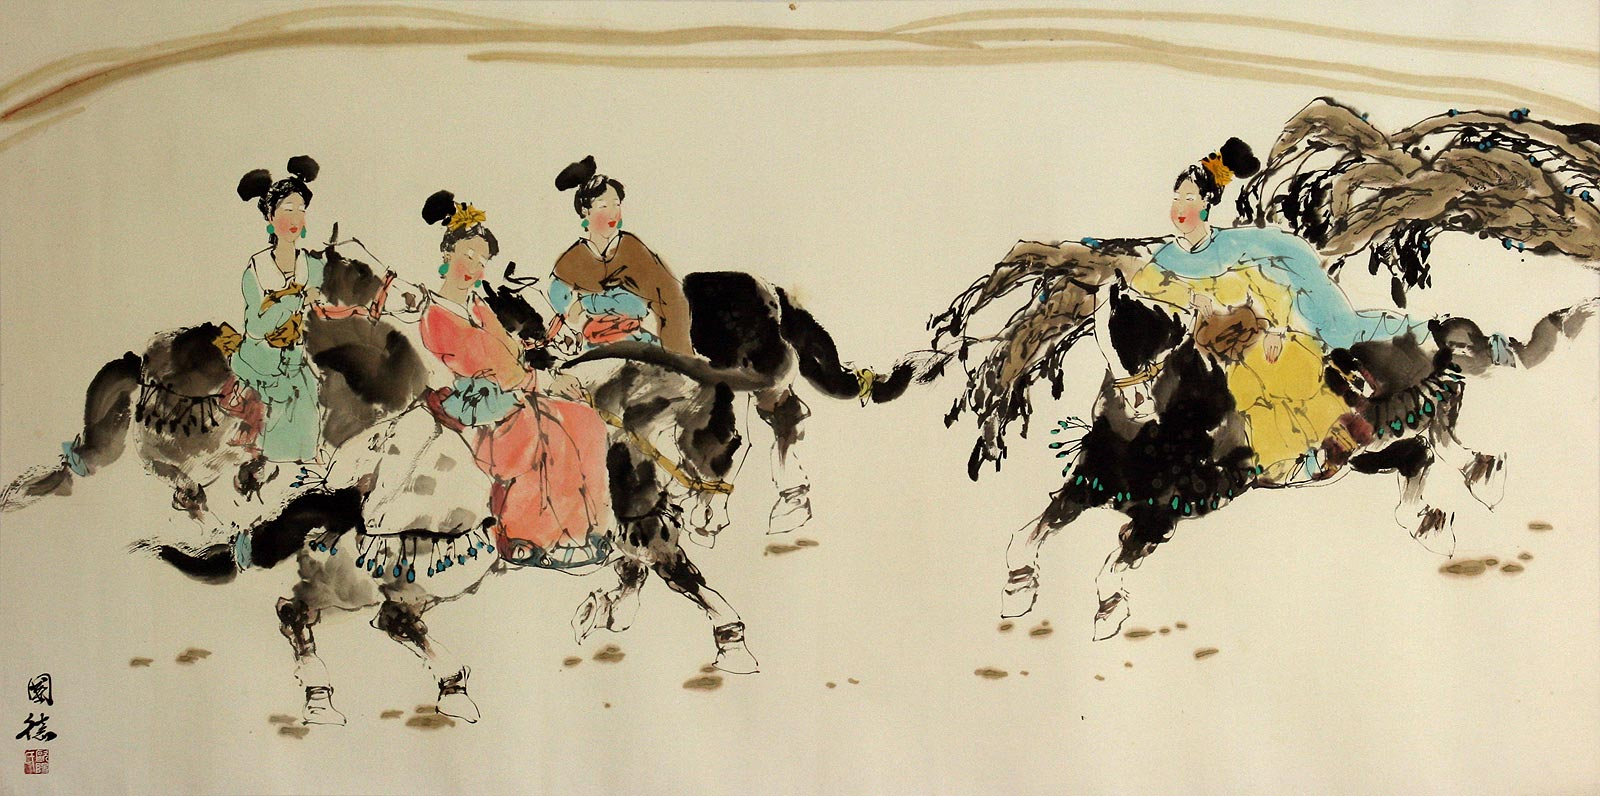 Tang Dynasty Horseback Ride - Large Painting